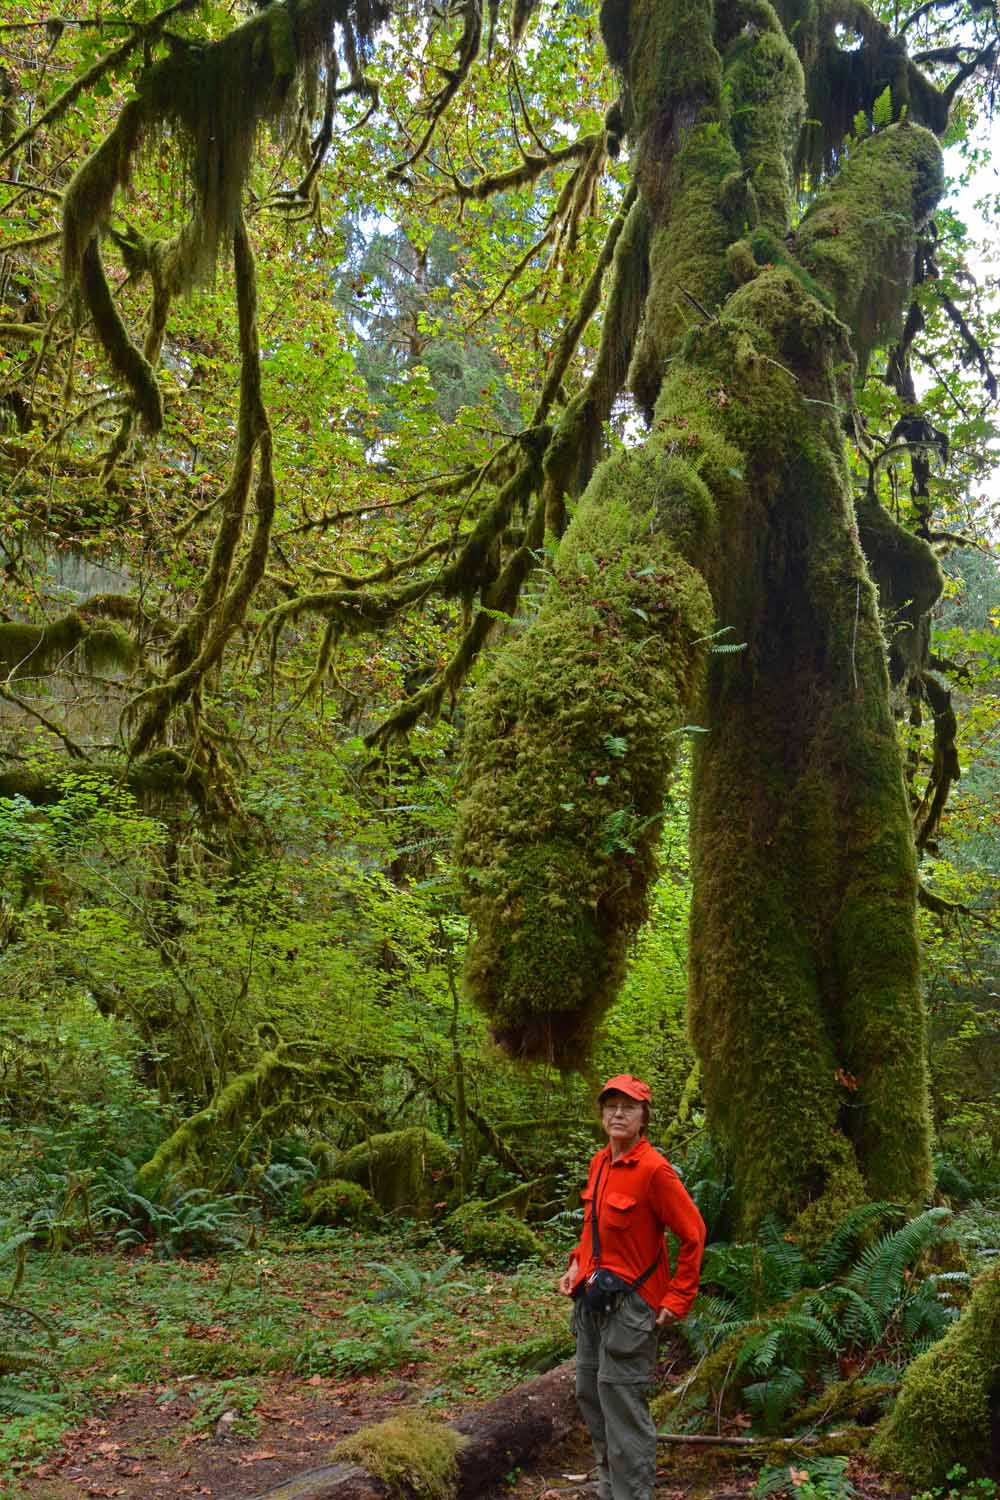 Jan enjoyed the many hikes in the Rain Forest of Washington